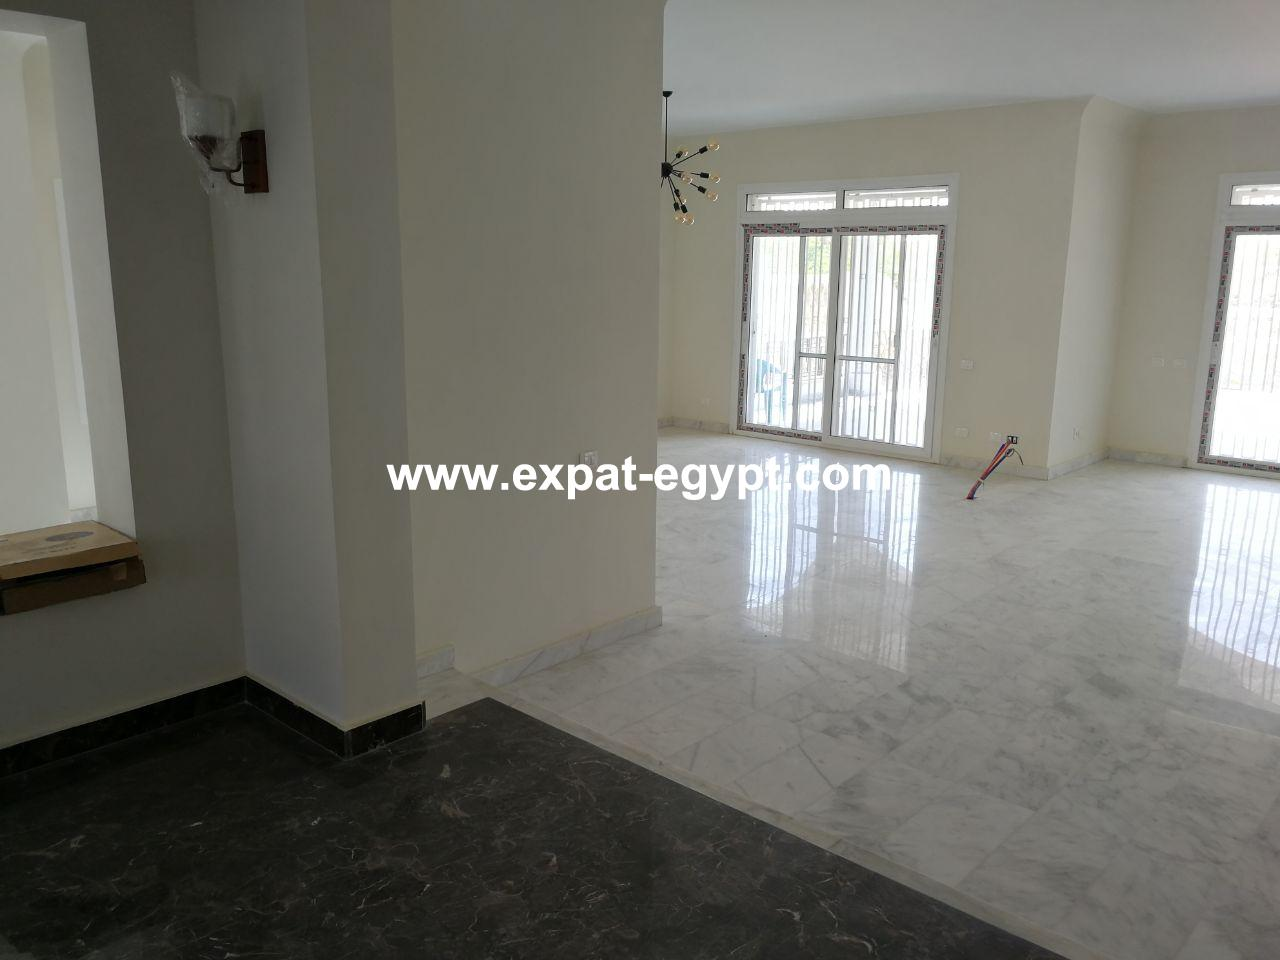 Villa For Sale  in plam hills , 6th october , Cairo , Egypt